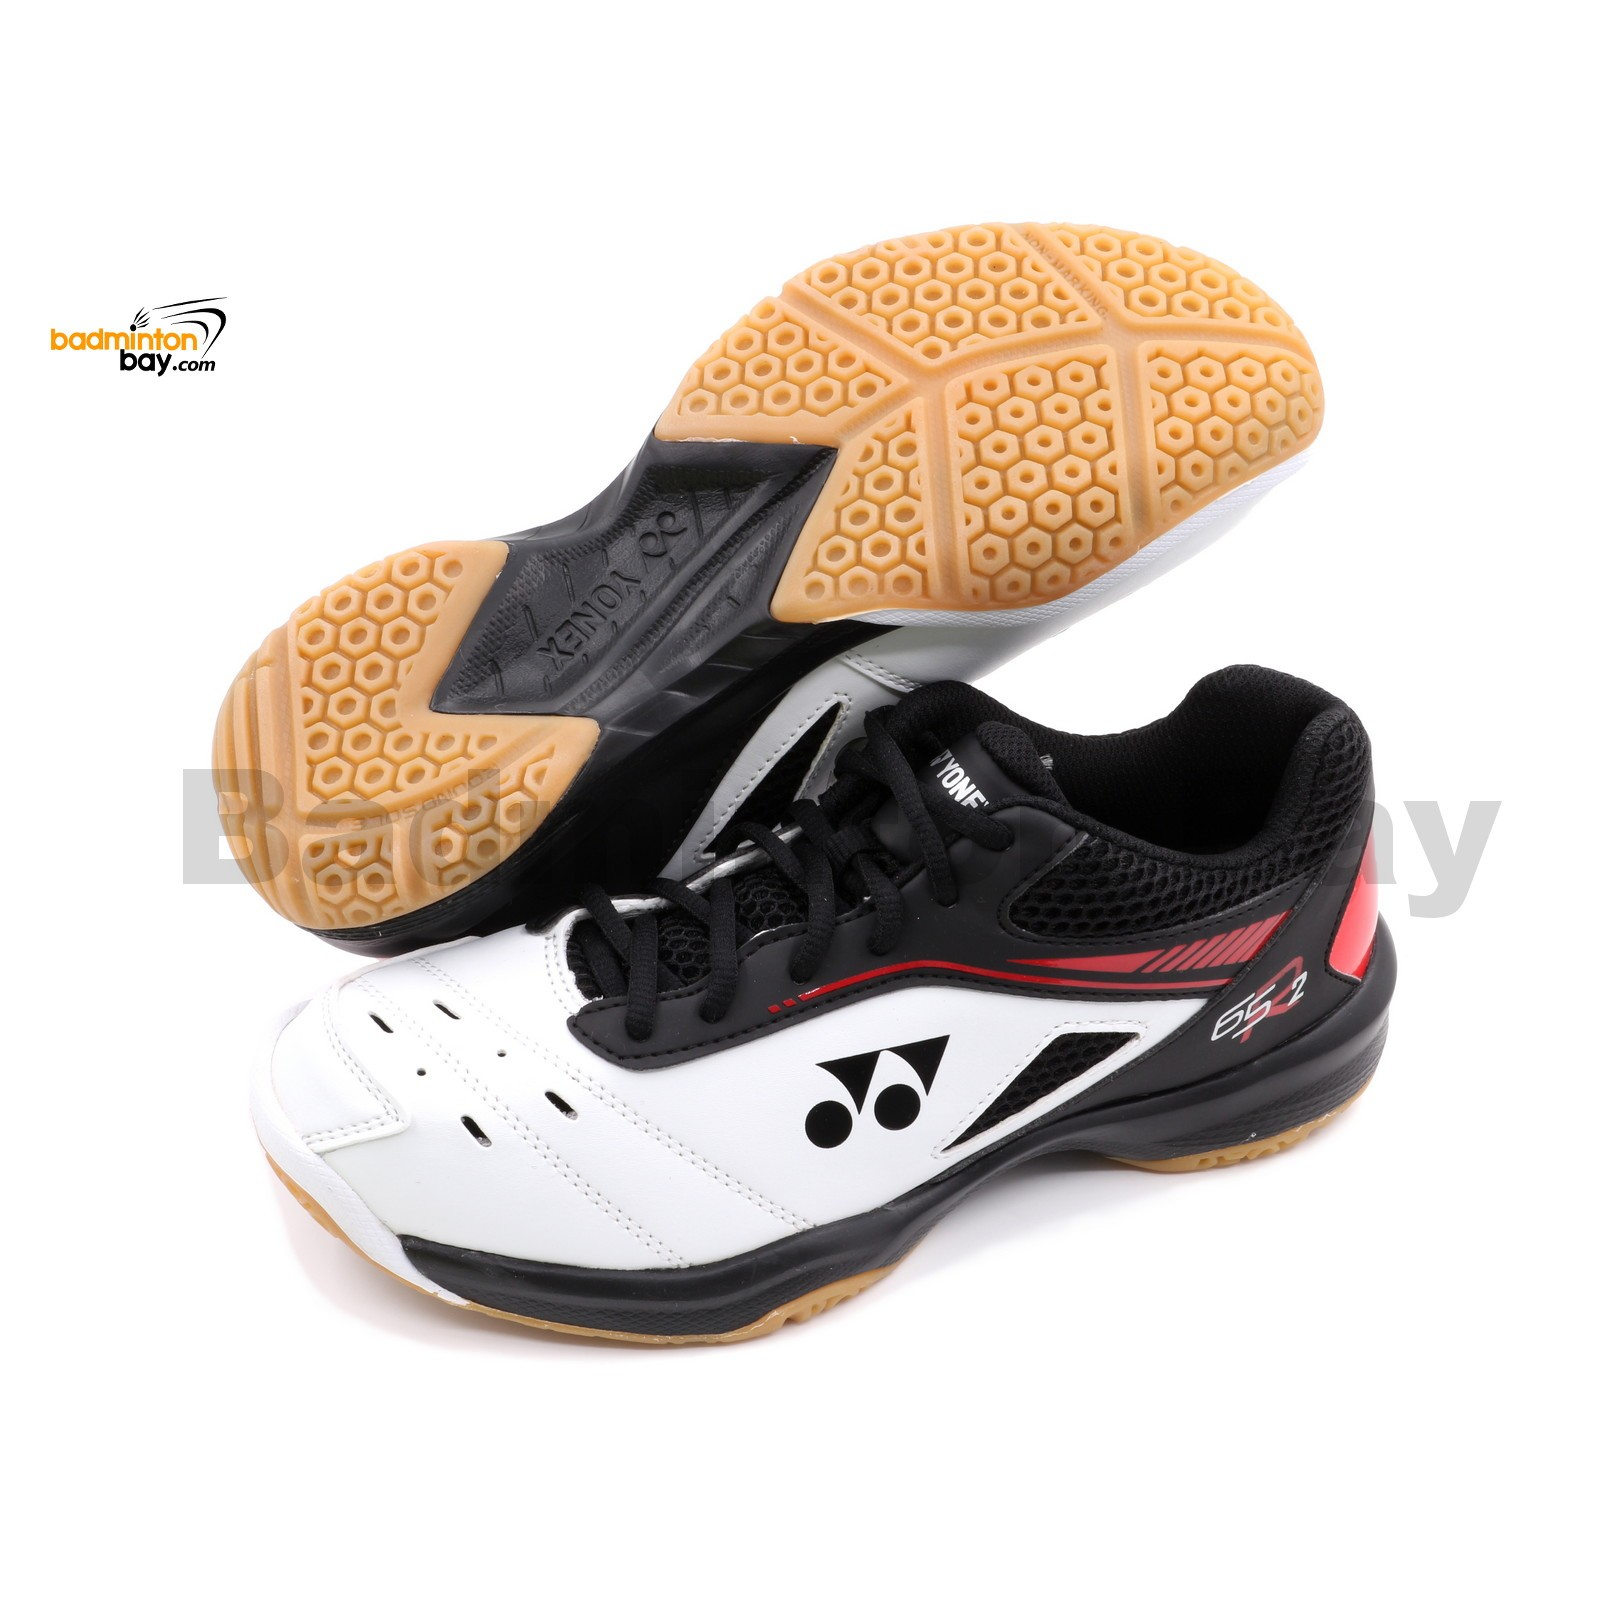 Yonex Cushion Power SHB-65R2 White Unisex Badminton Shoes (SHB-65R2) af68ecfcab915